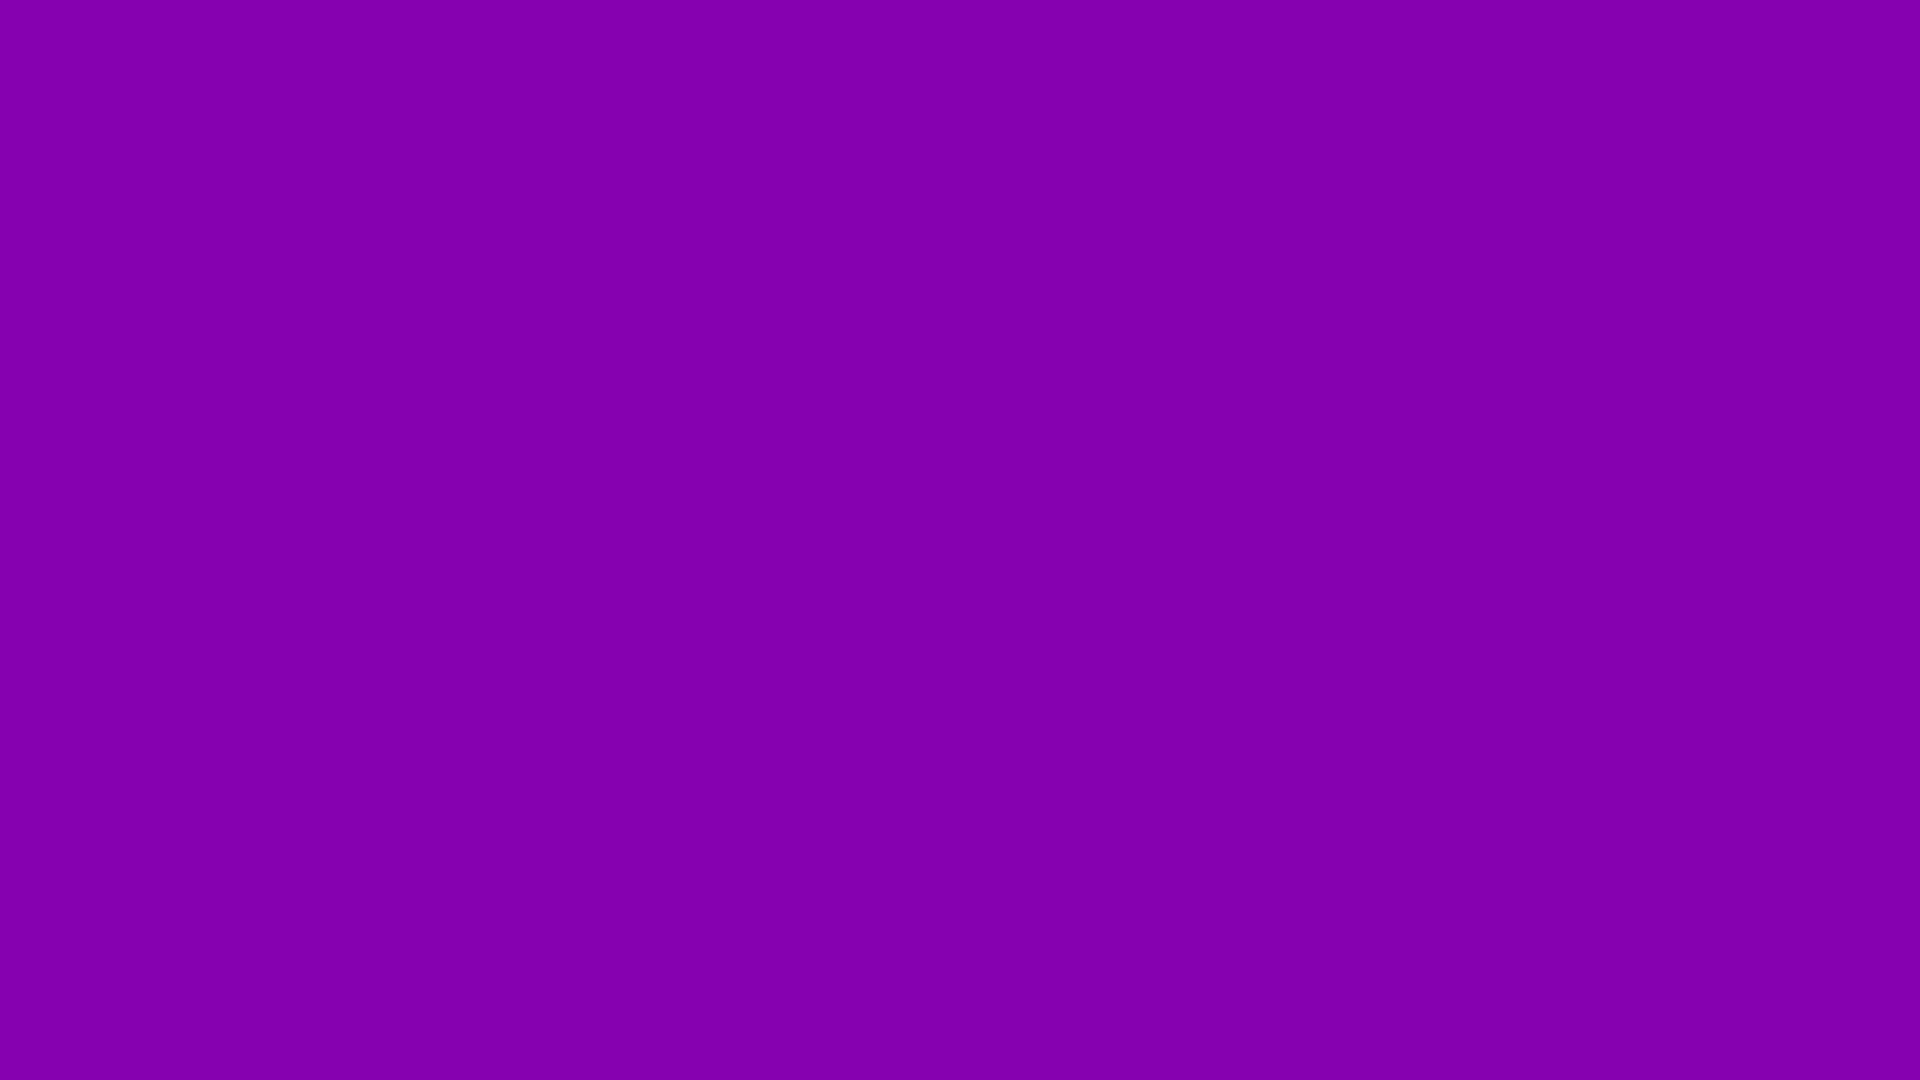 1920x1080 Violet RYB Solid Color Background